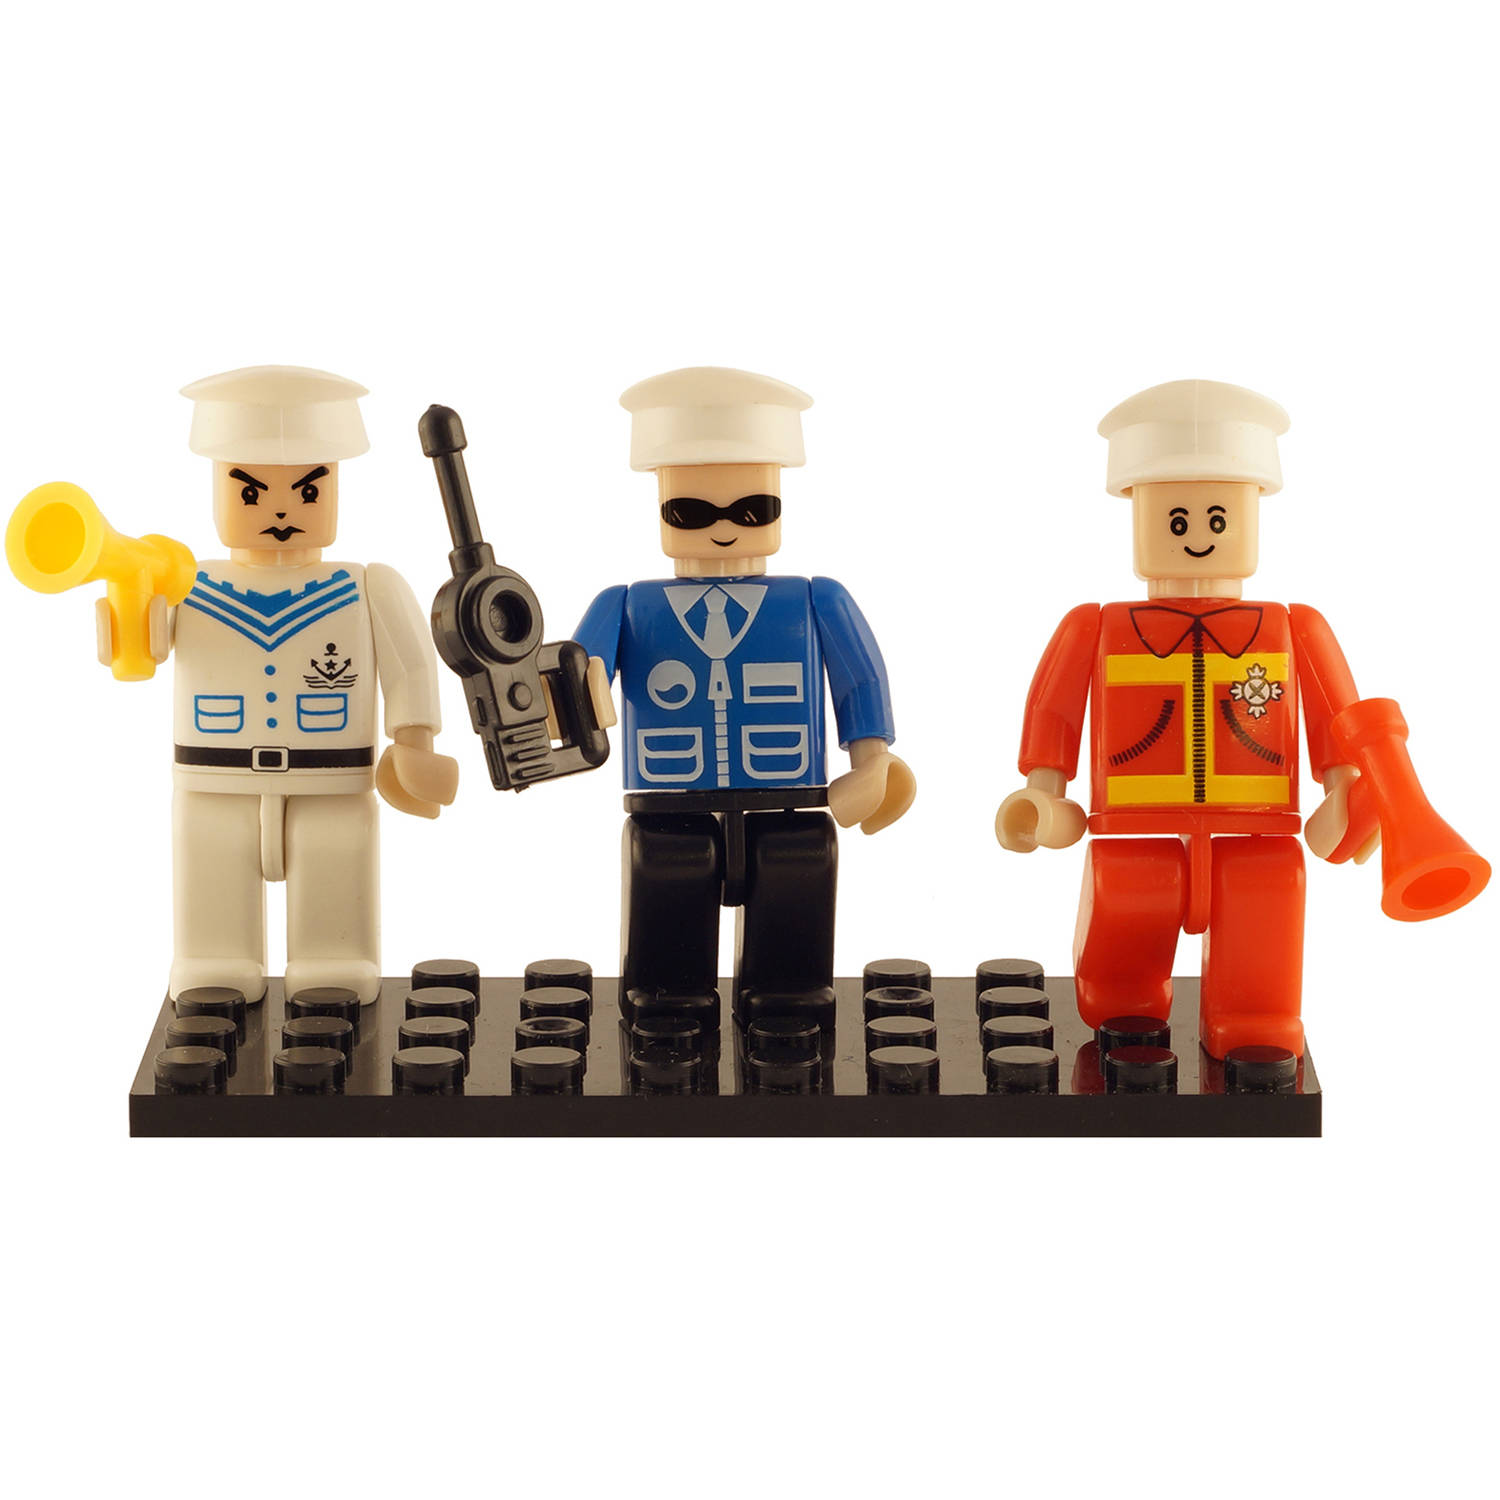 Brictek 3 Mini-Figurines, Navy Police and Fire Brigade